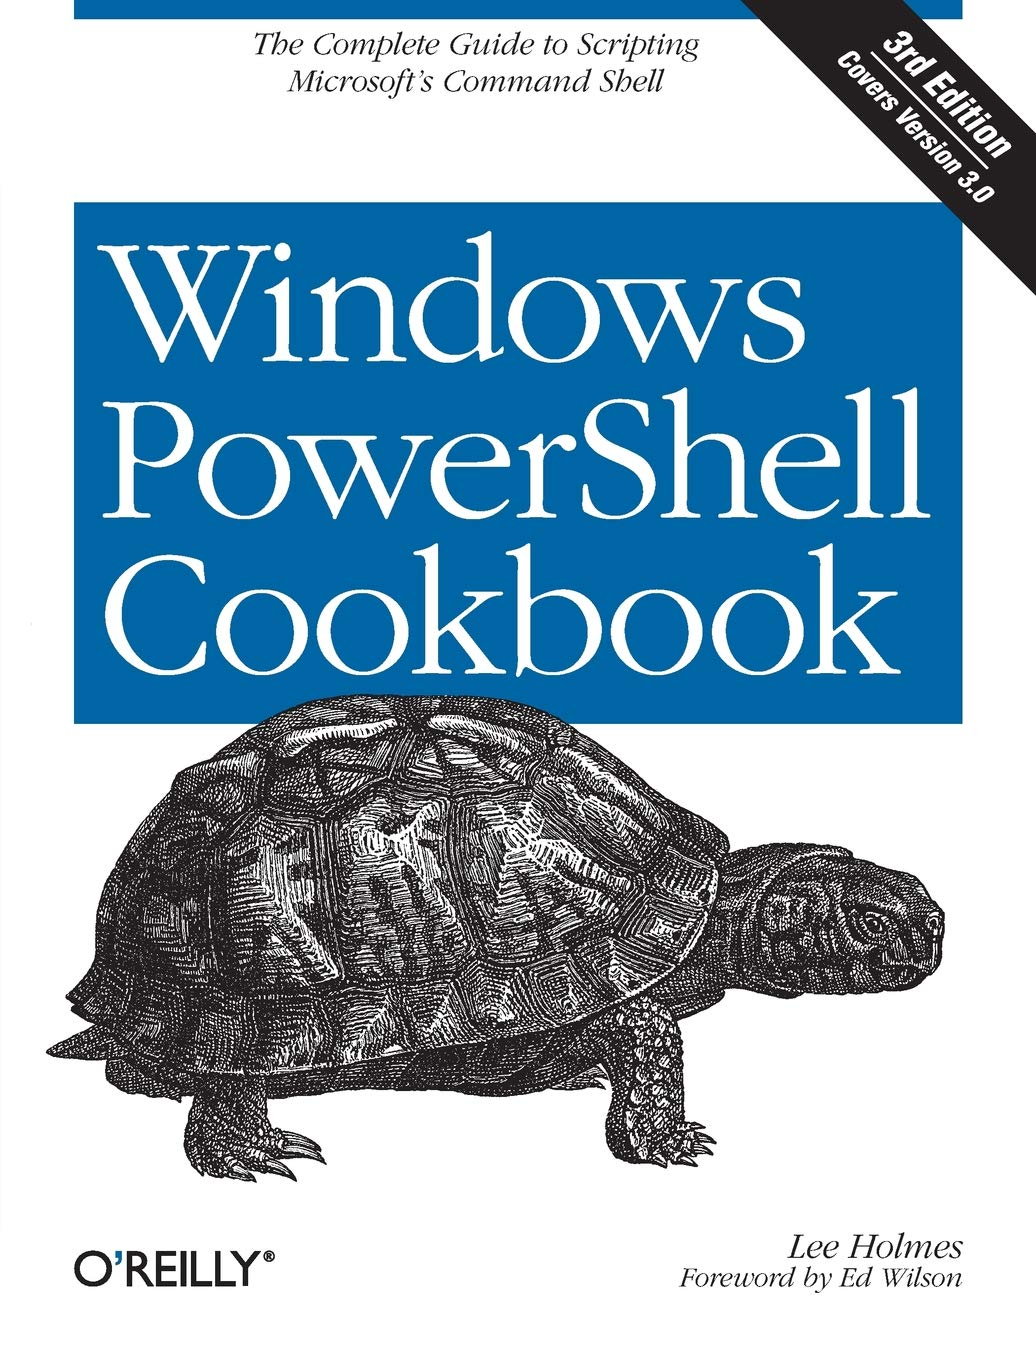 Image OfWindows PowerShell Cookbook 3e.